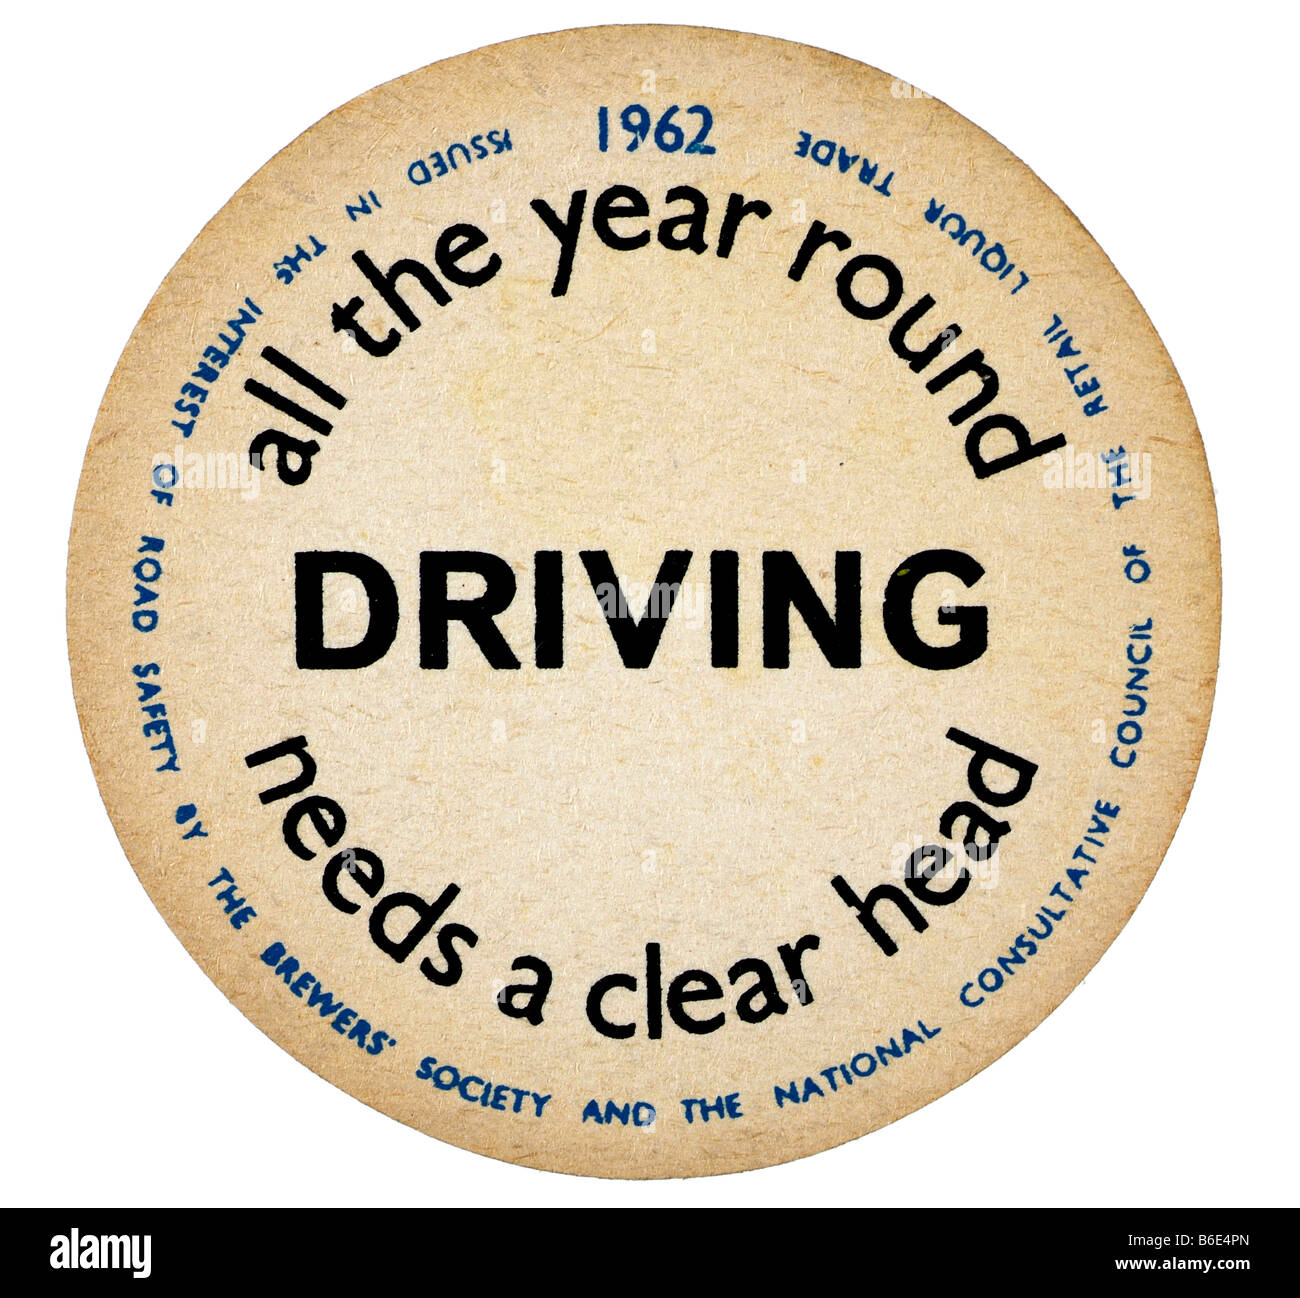 all year round driving 1962 needs a clear head - Stock Image